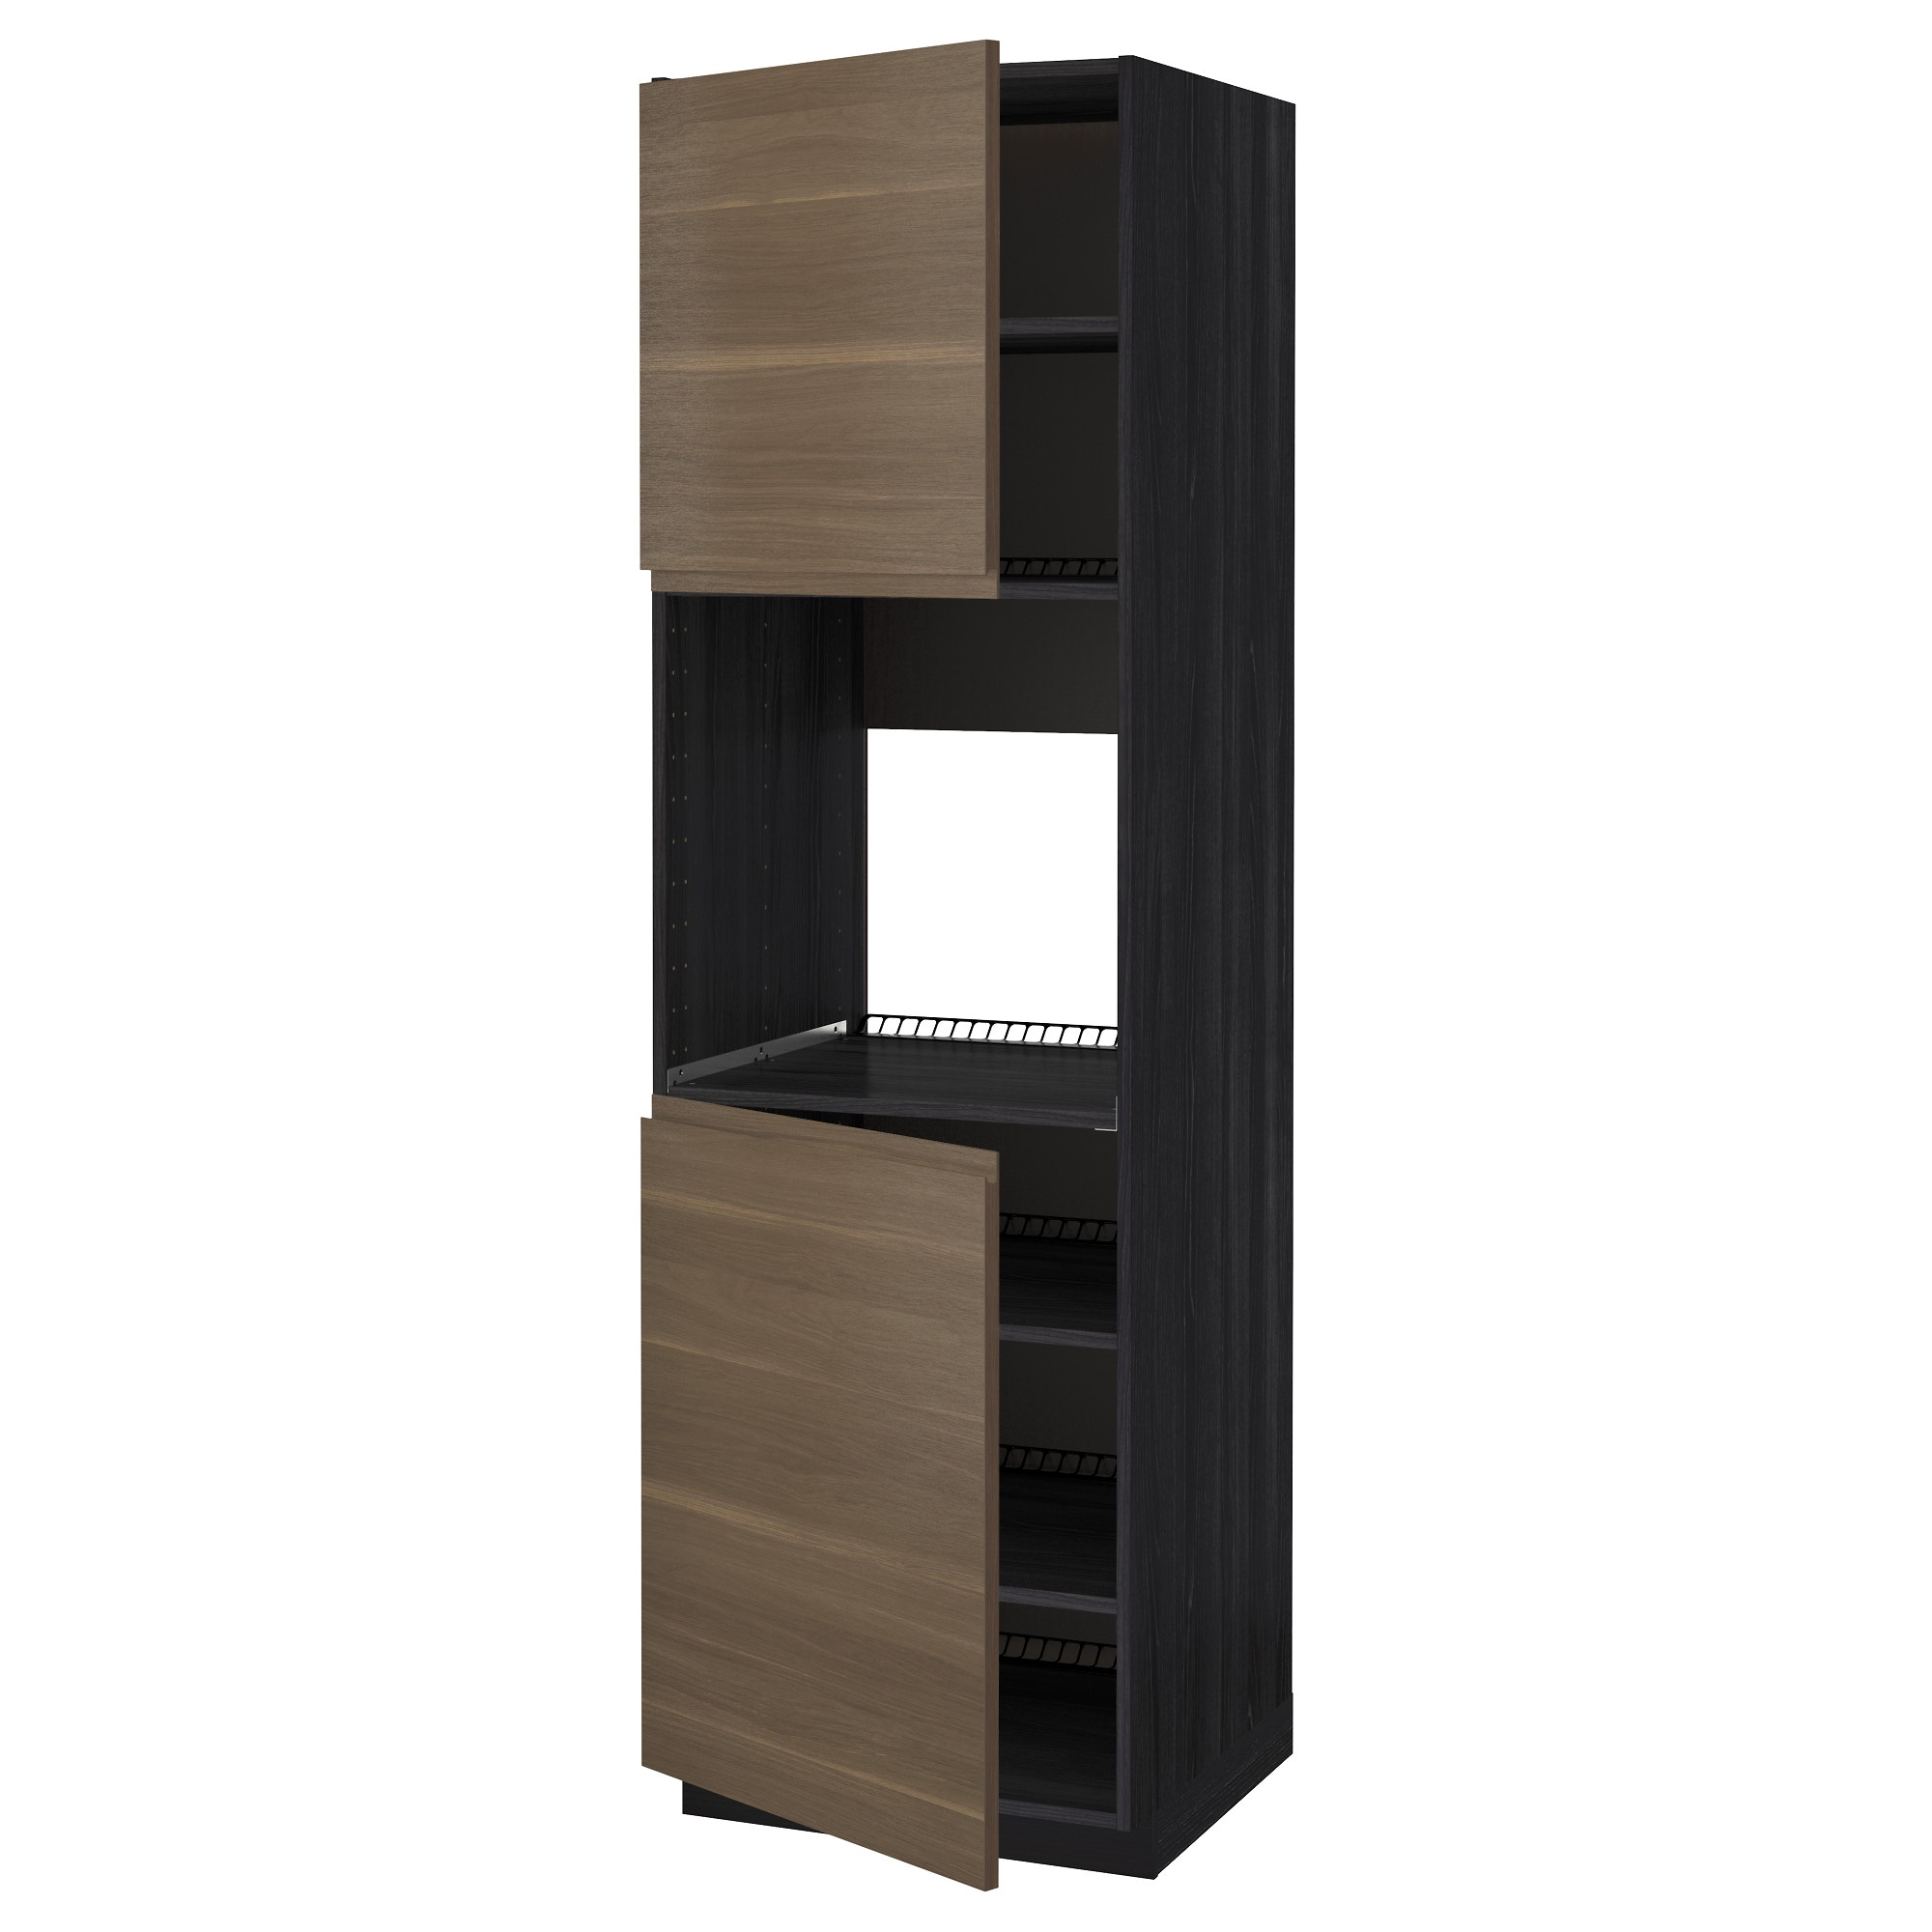 meuble colonne pour four encastrable meuble haut four encastrable cuisine en image meuble. Black Bedroom Furniture Sets. Home Design Ideas